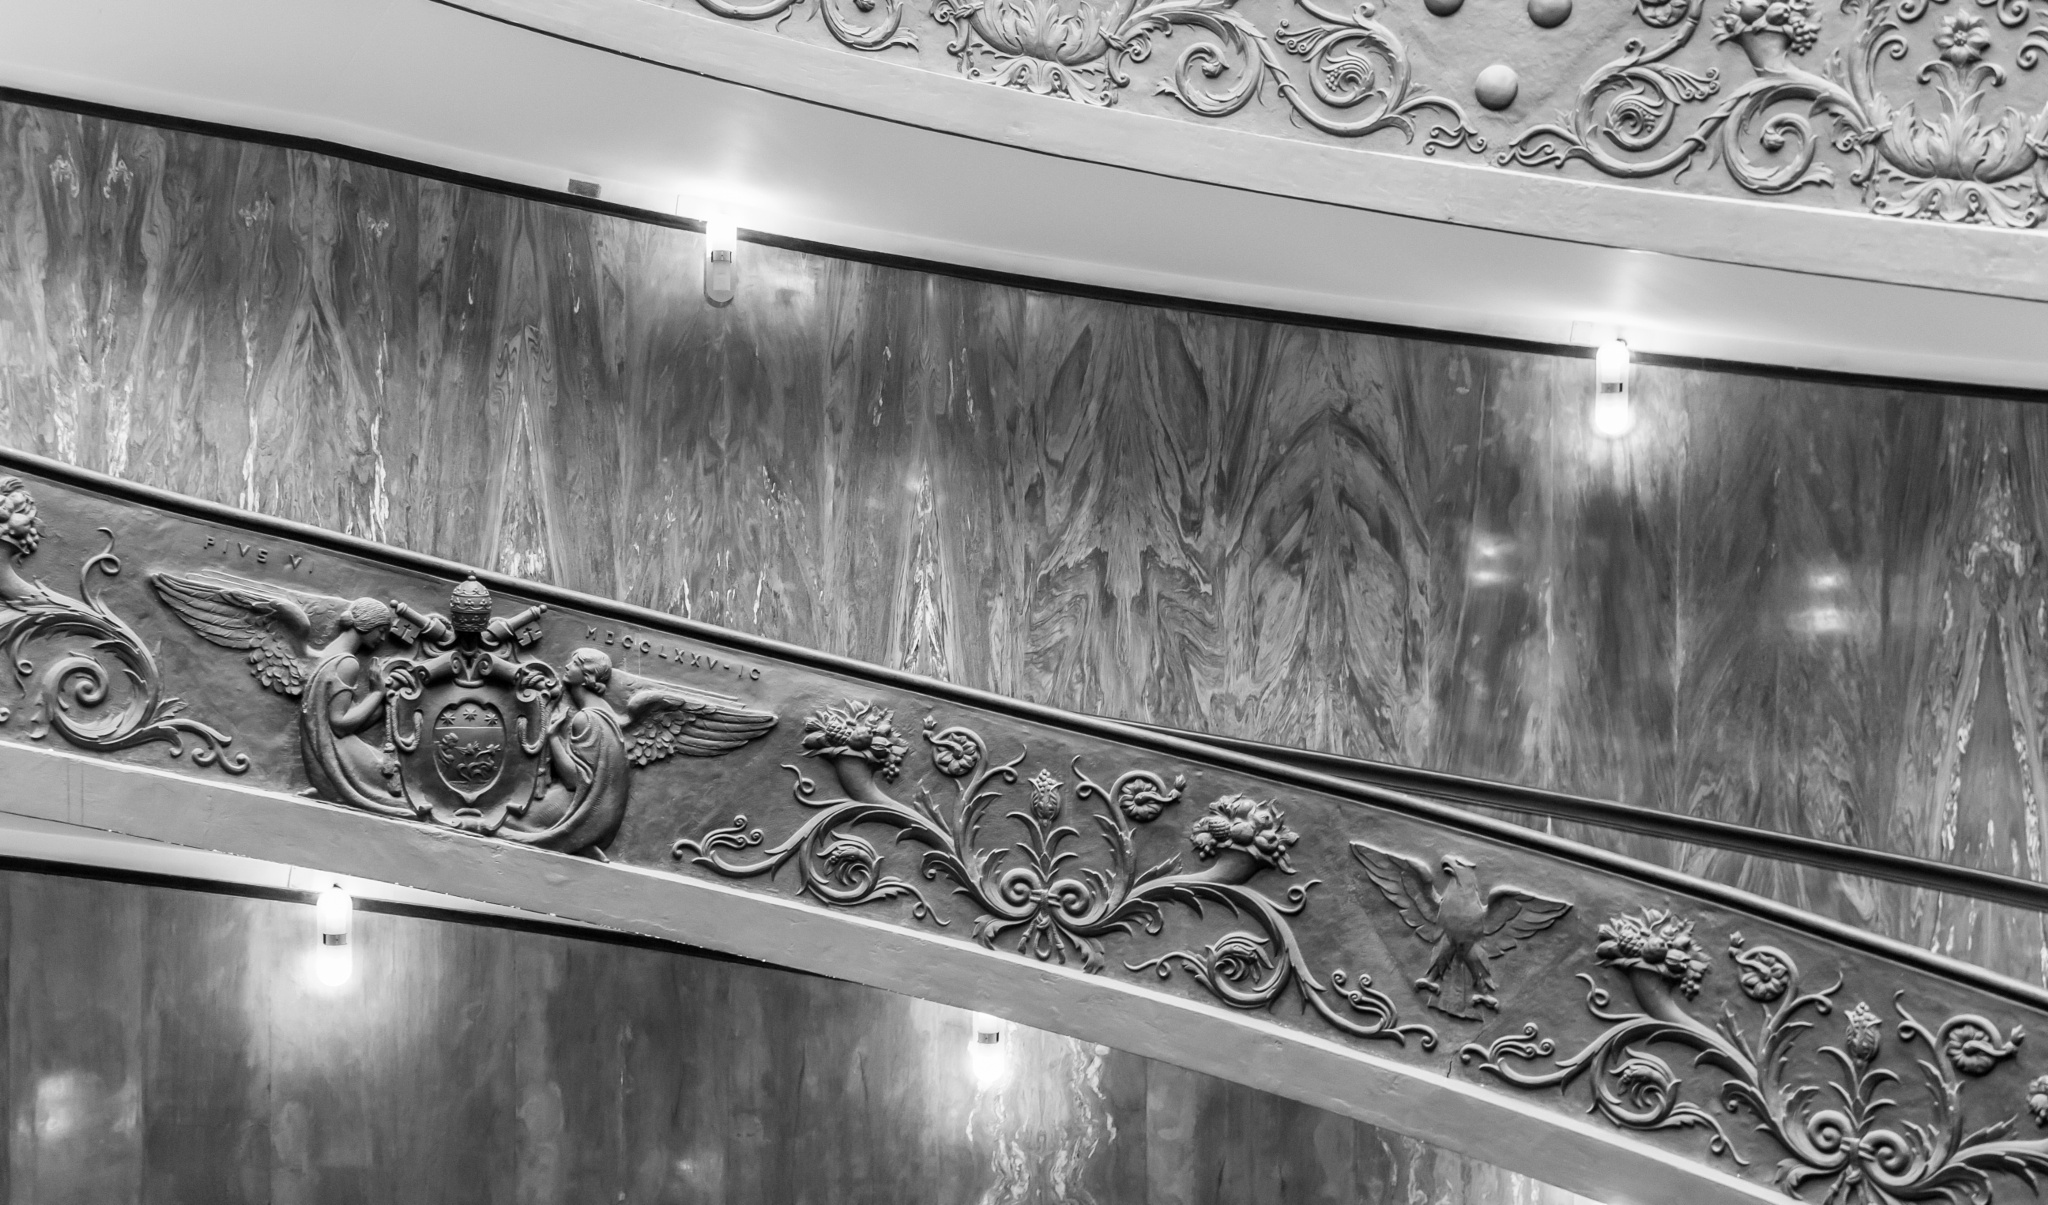 Musei Vaticani architectural detail by Sami Tiainen